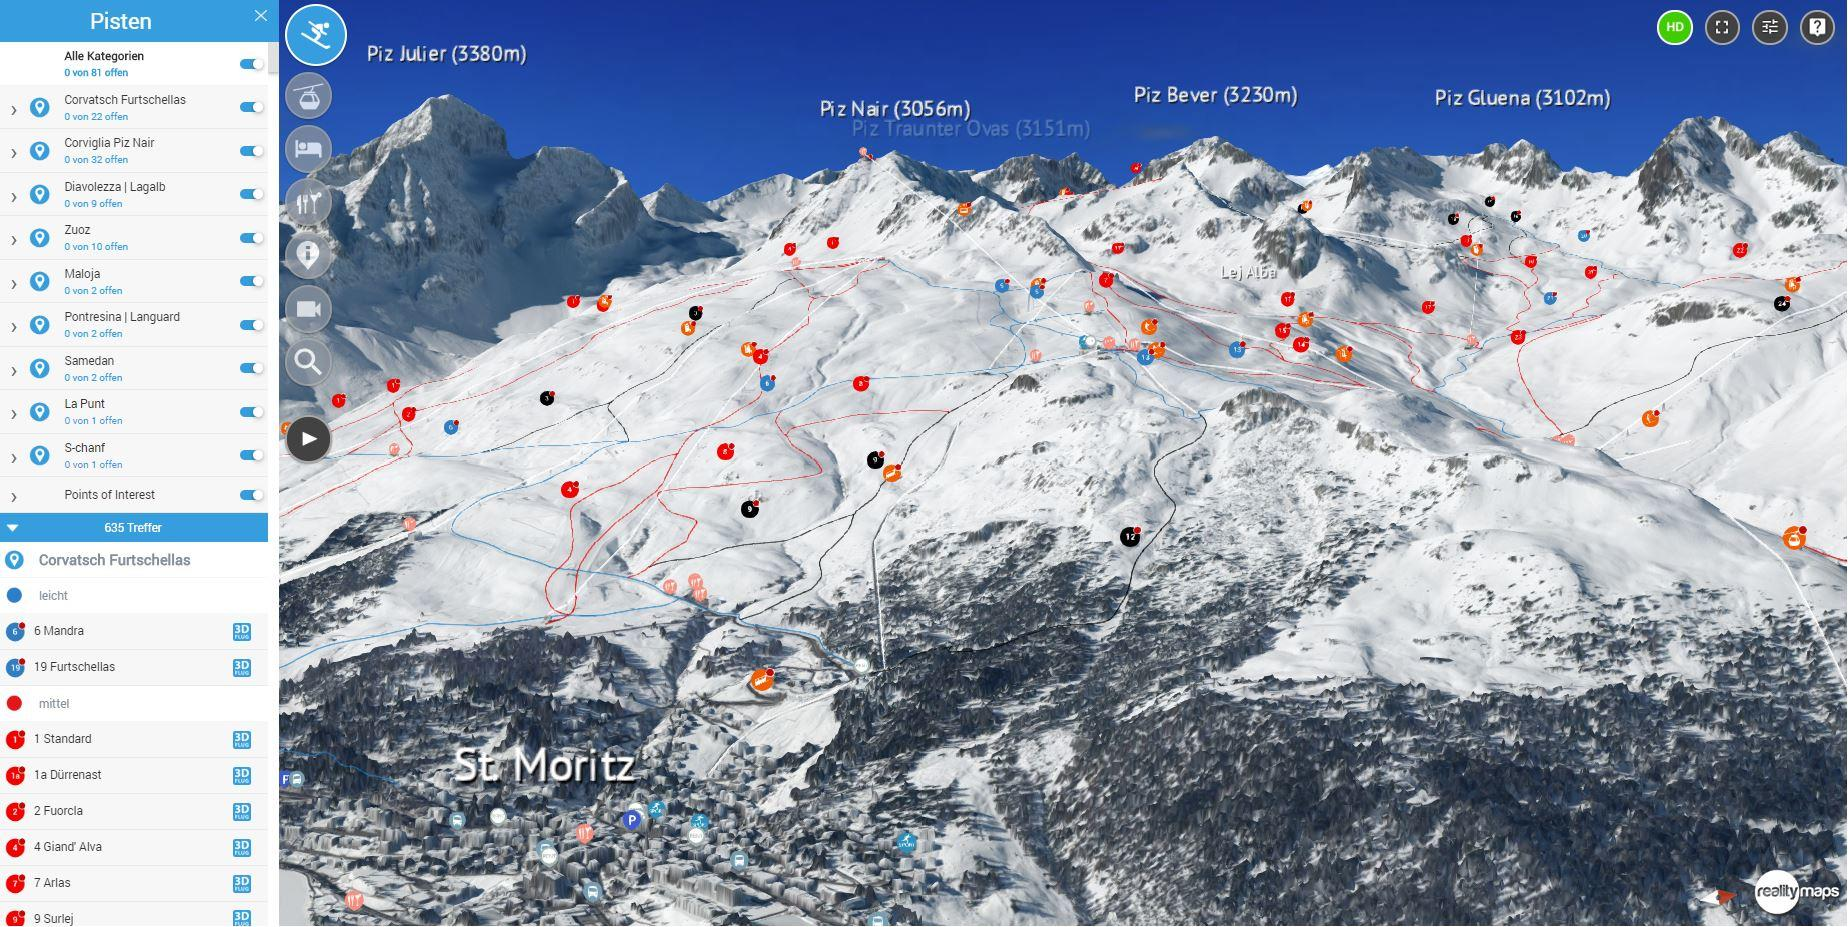 Engadin-St. Moritz & Davos-Klosters in 3D » Winter | 3D RealityMaps